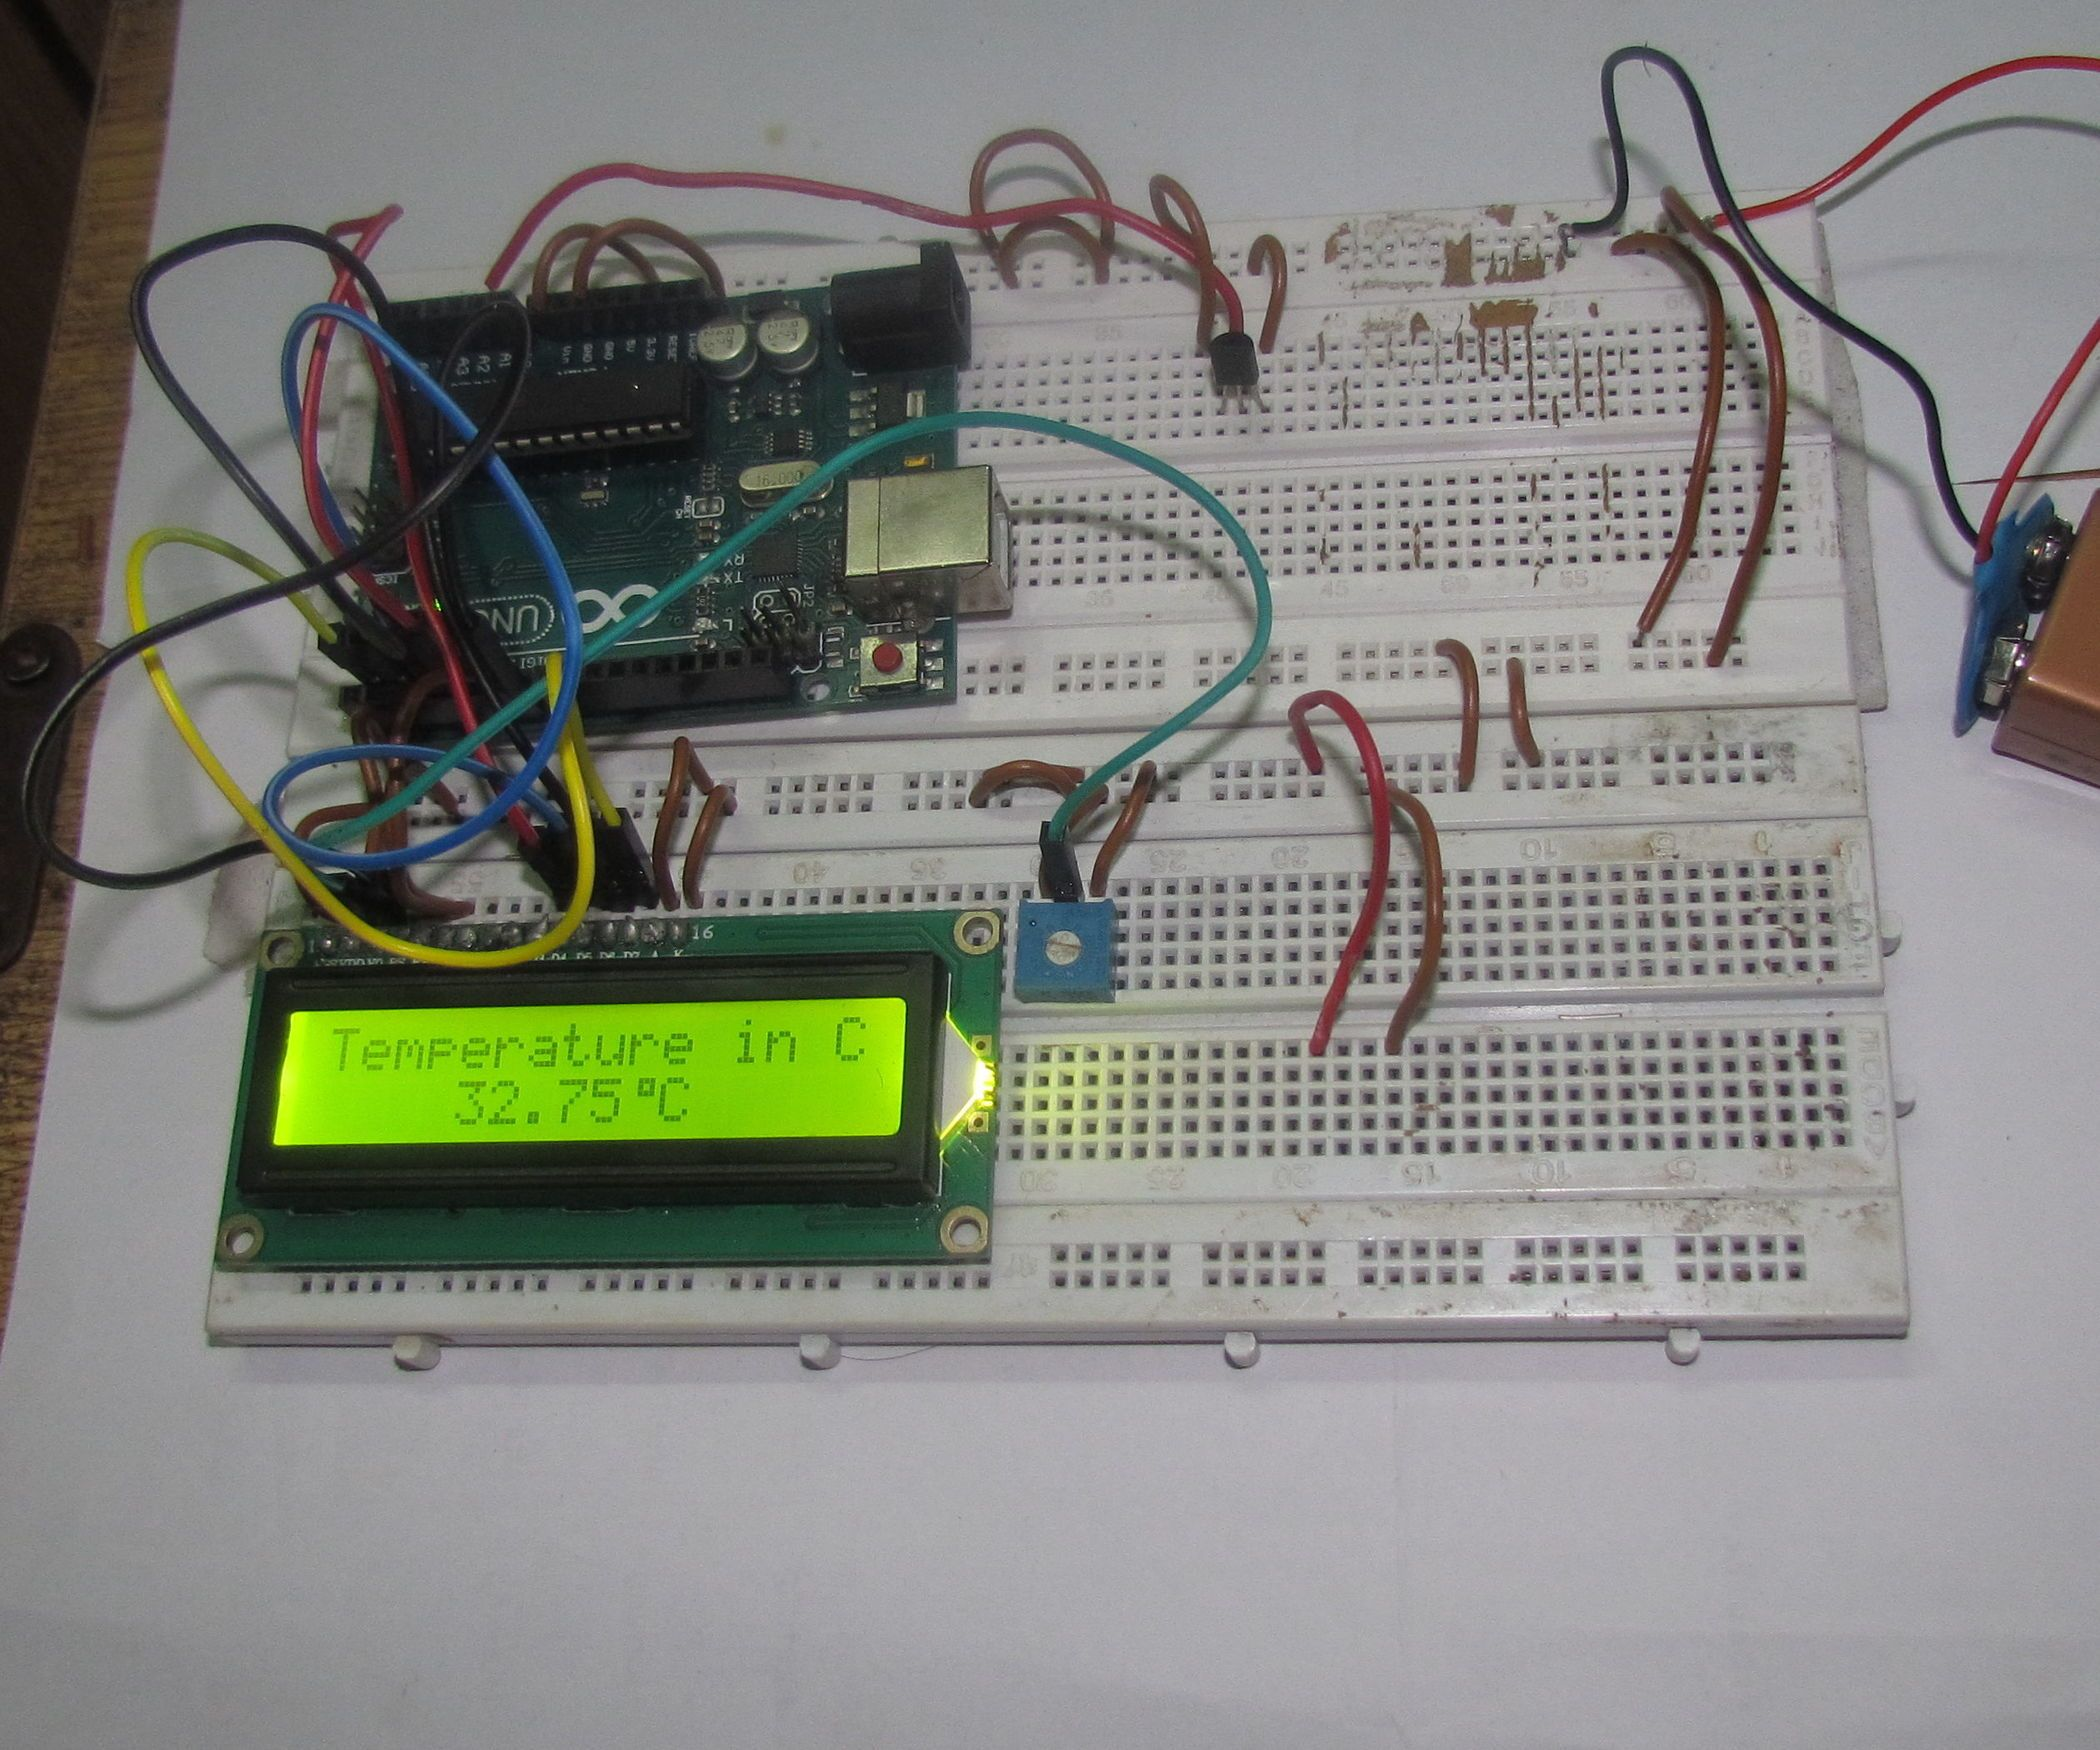 In This Project Explain To Digital Clock System Using By 8 Code Lock 8051 Microcontroller At89c51 With Arduino Based Temperature Sensor